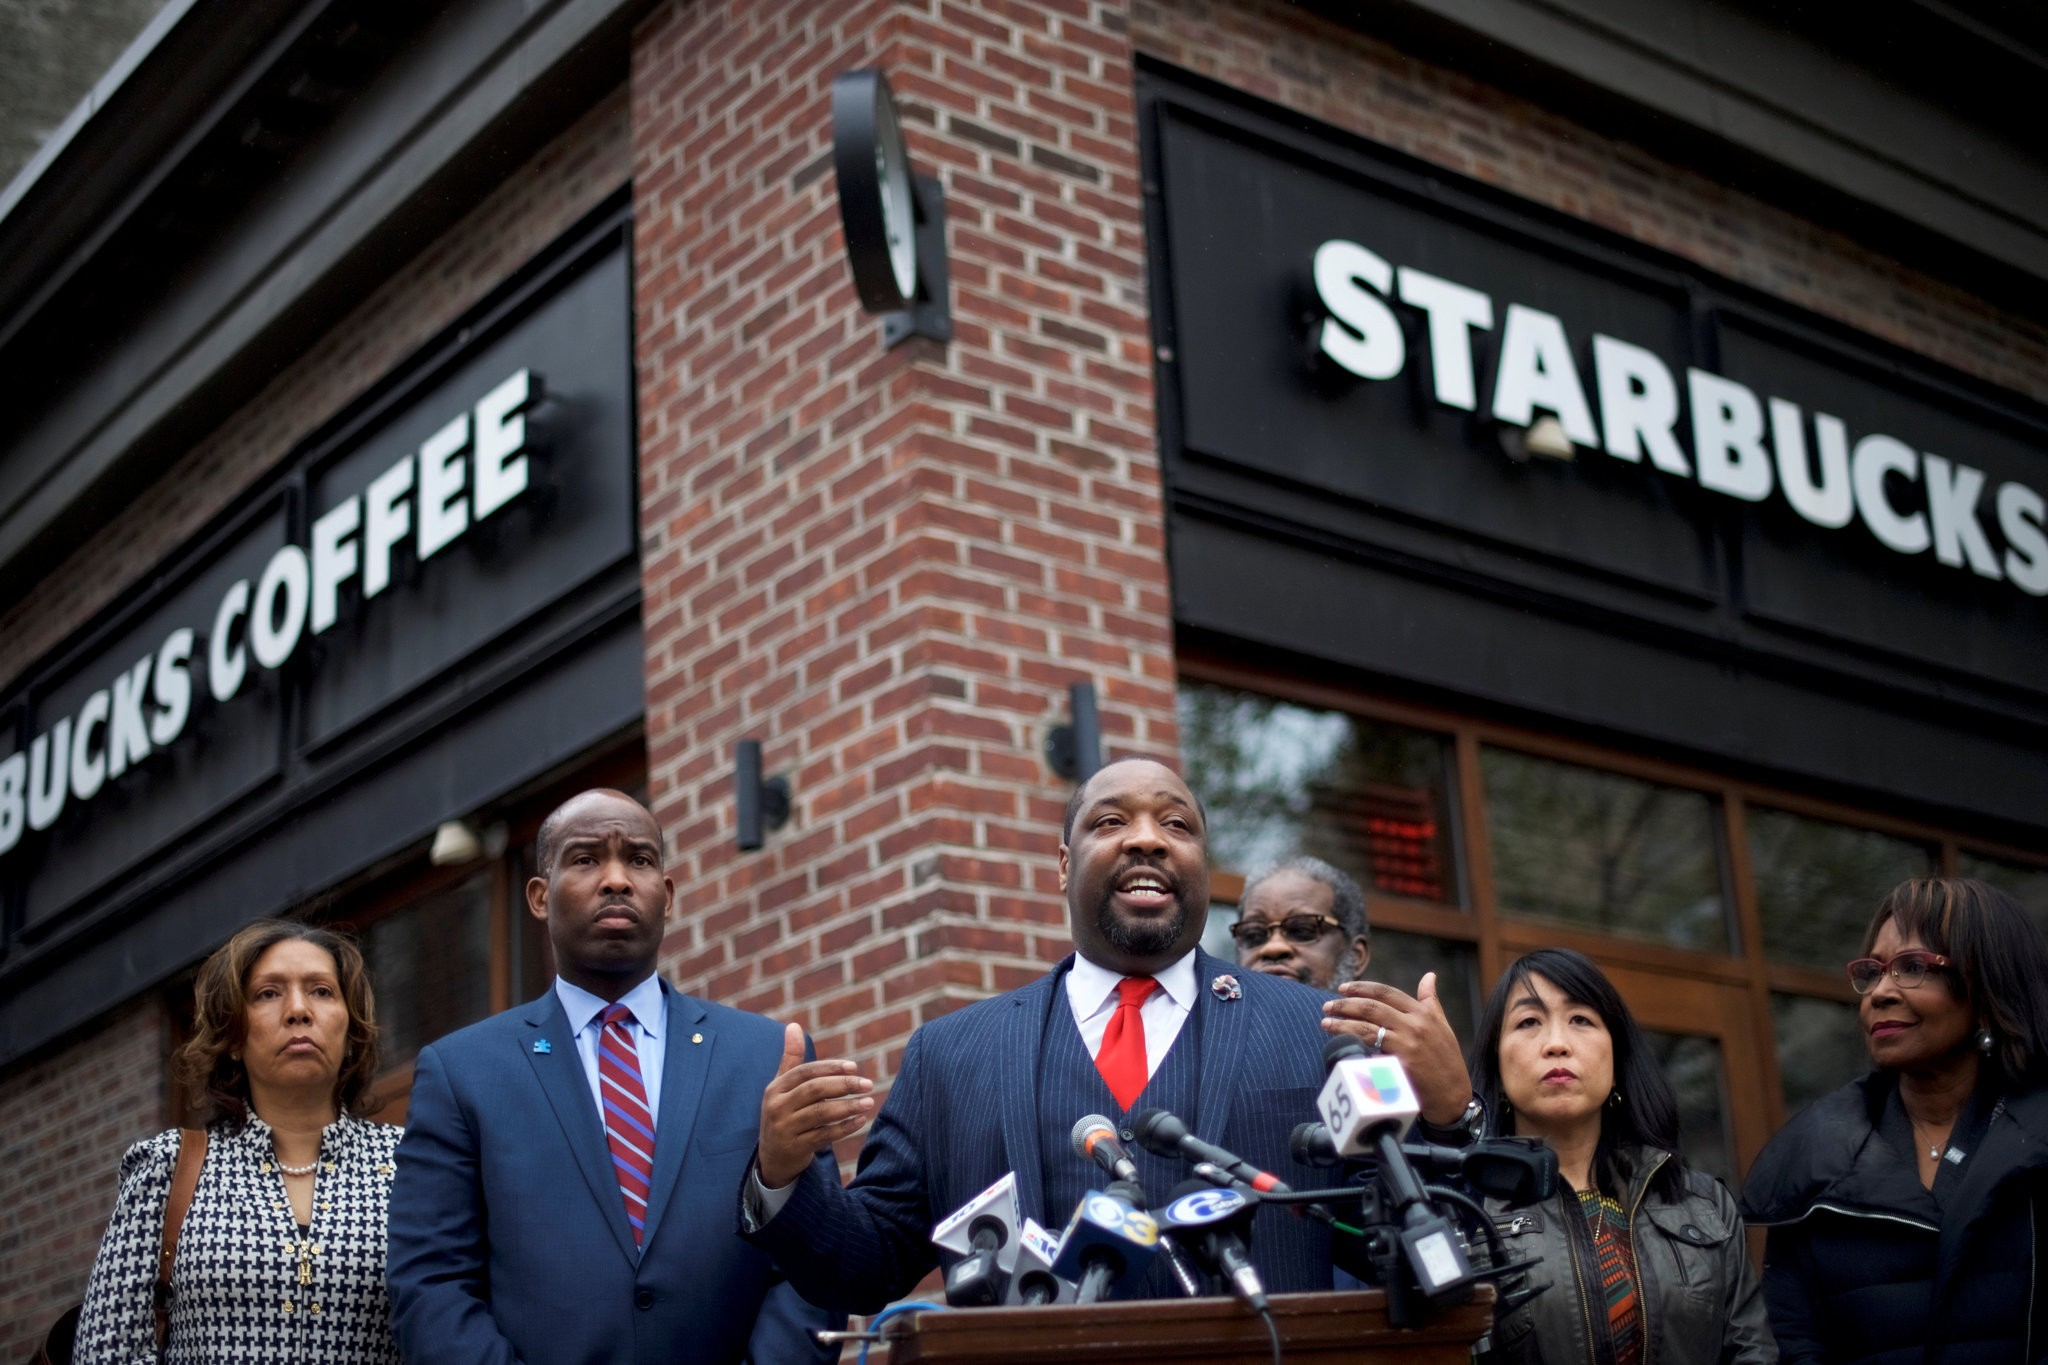 Letter to the Editor: Racial Bias Training at Starbucks